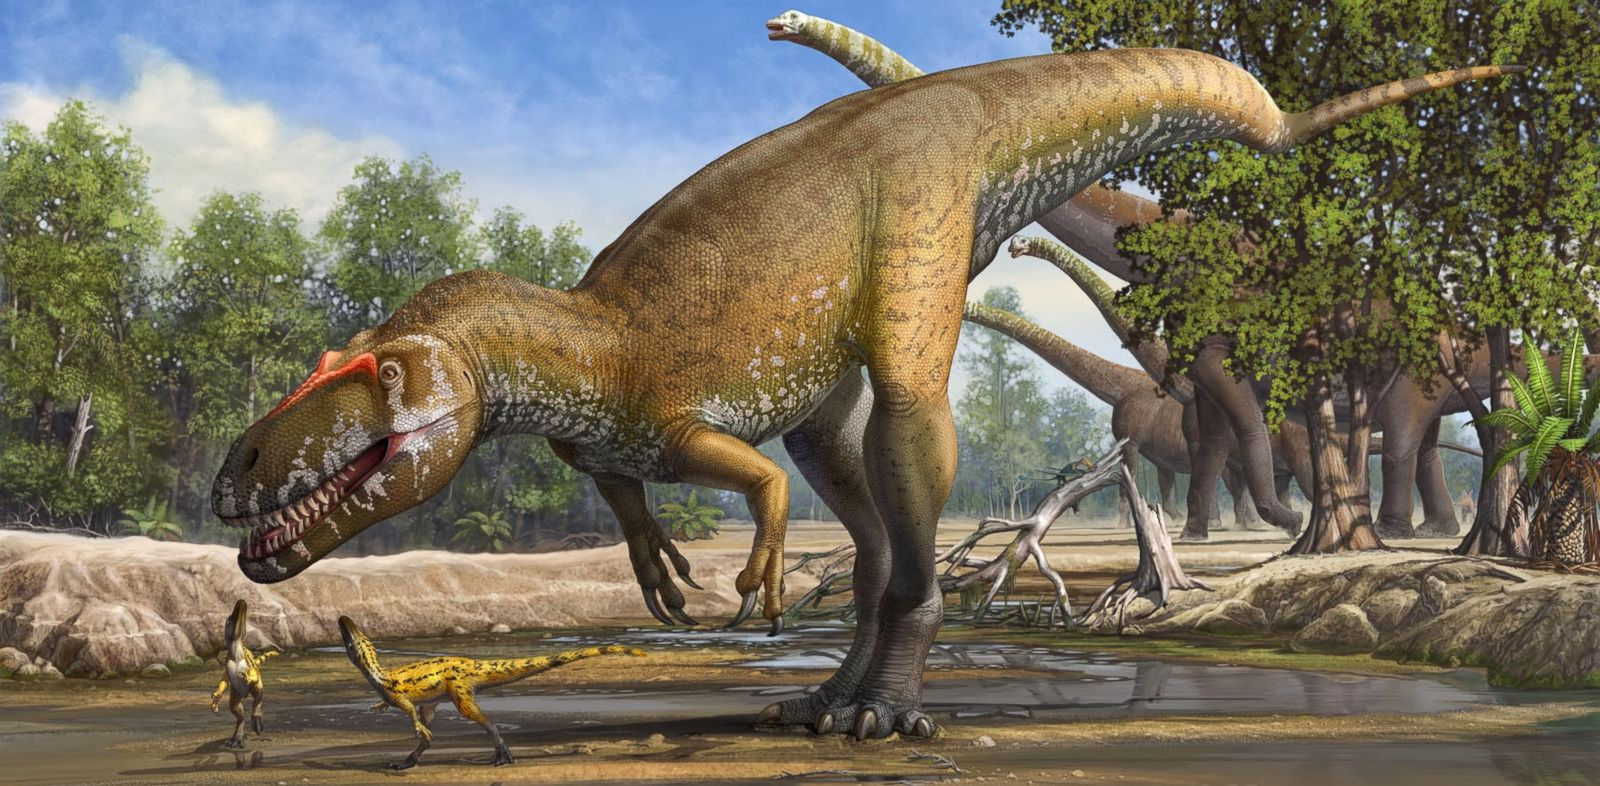 PHOTO: Torvosaurus gurneyi may have been the largest European predator in the late Jurassic.